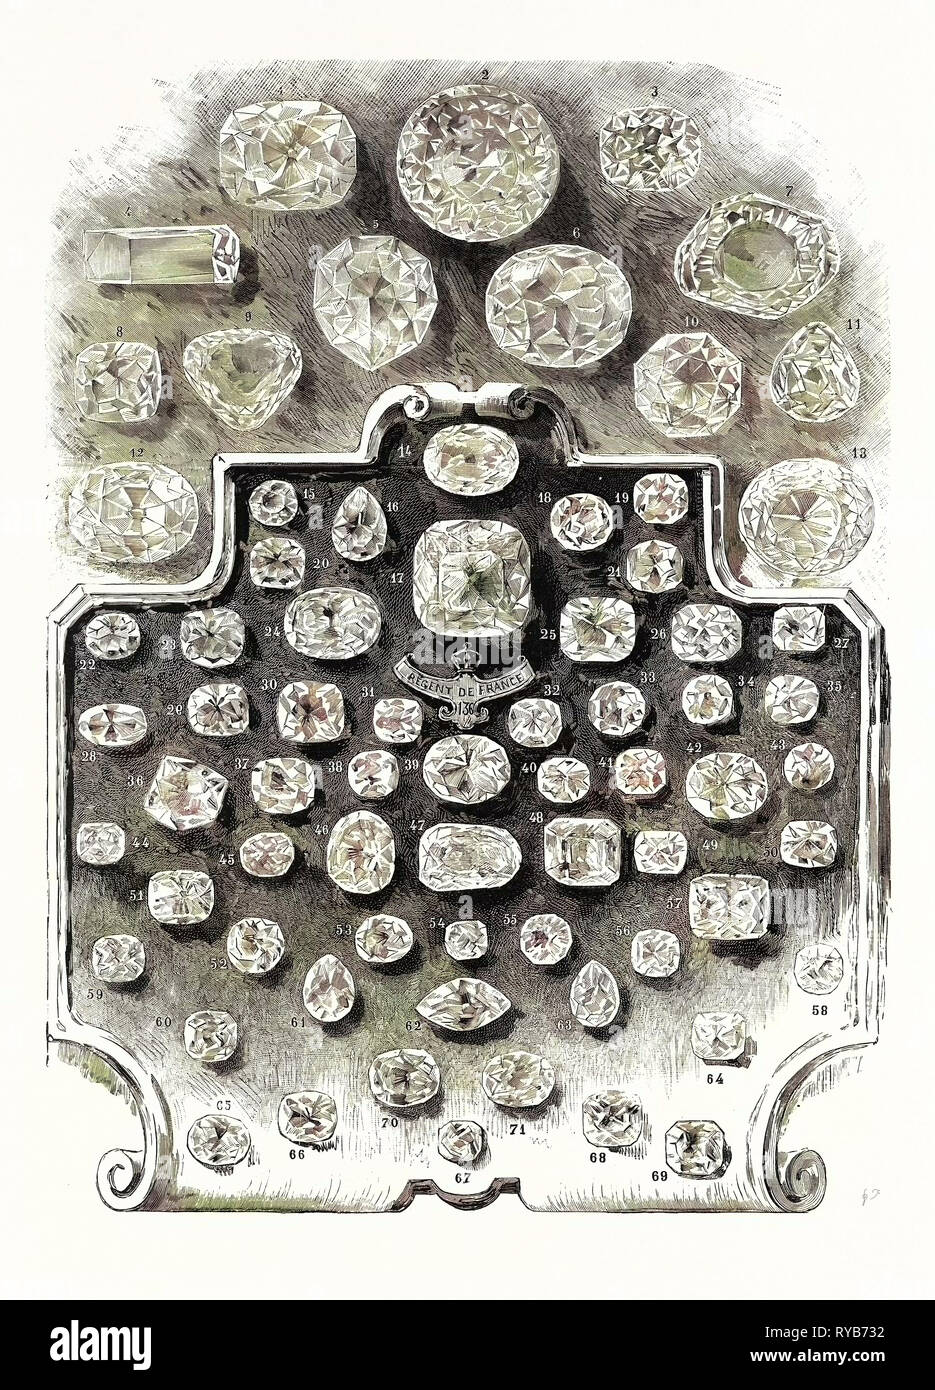 The Largest Diamonds in the World: 1. The English Lottery Diamond. 2. The Great Mogul. 3. The Blue Diamond. 4. The Shah of Russia. 5. The Florentine. 6. The Koh-I-Noor, after Cutting. 7. The Koh-I-Noor, Before Cutting. 8. The Pole-Star. 9. The Nassak. 10. The Pasha of Egypt. 11. The Sancy Diamond. 12. The Star of the South. 13. The Orloff Diamond. 14 to 71. The Regent and Mazarin Diamonds, and Various Diamonds which Have Been Set in Ornaments., 1887 - Stock Image